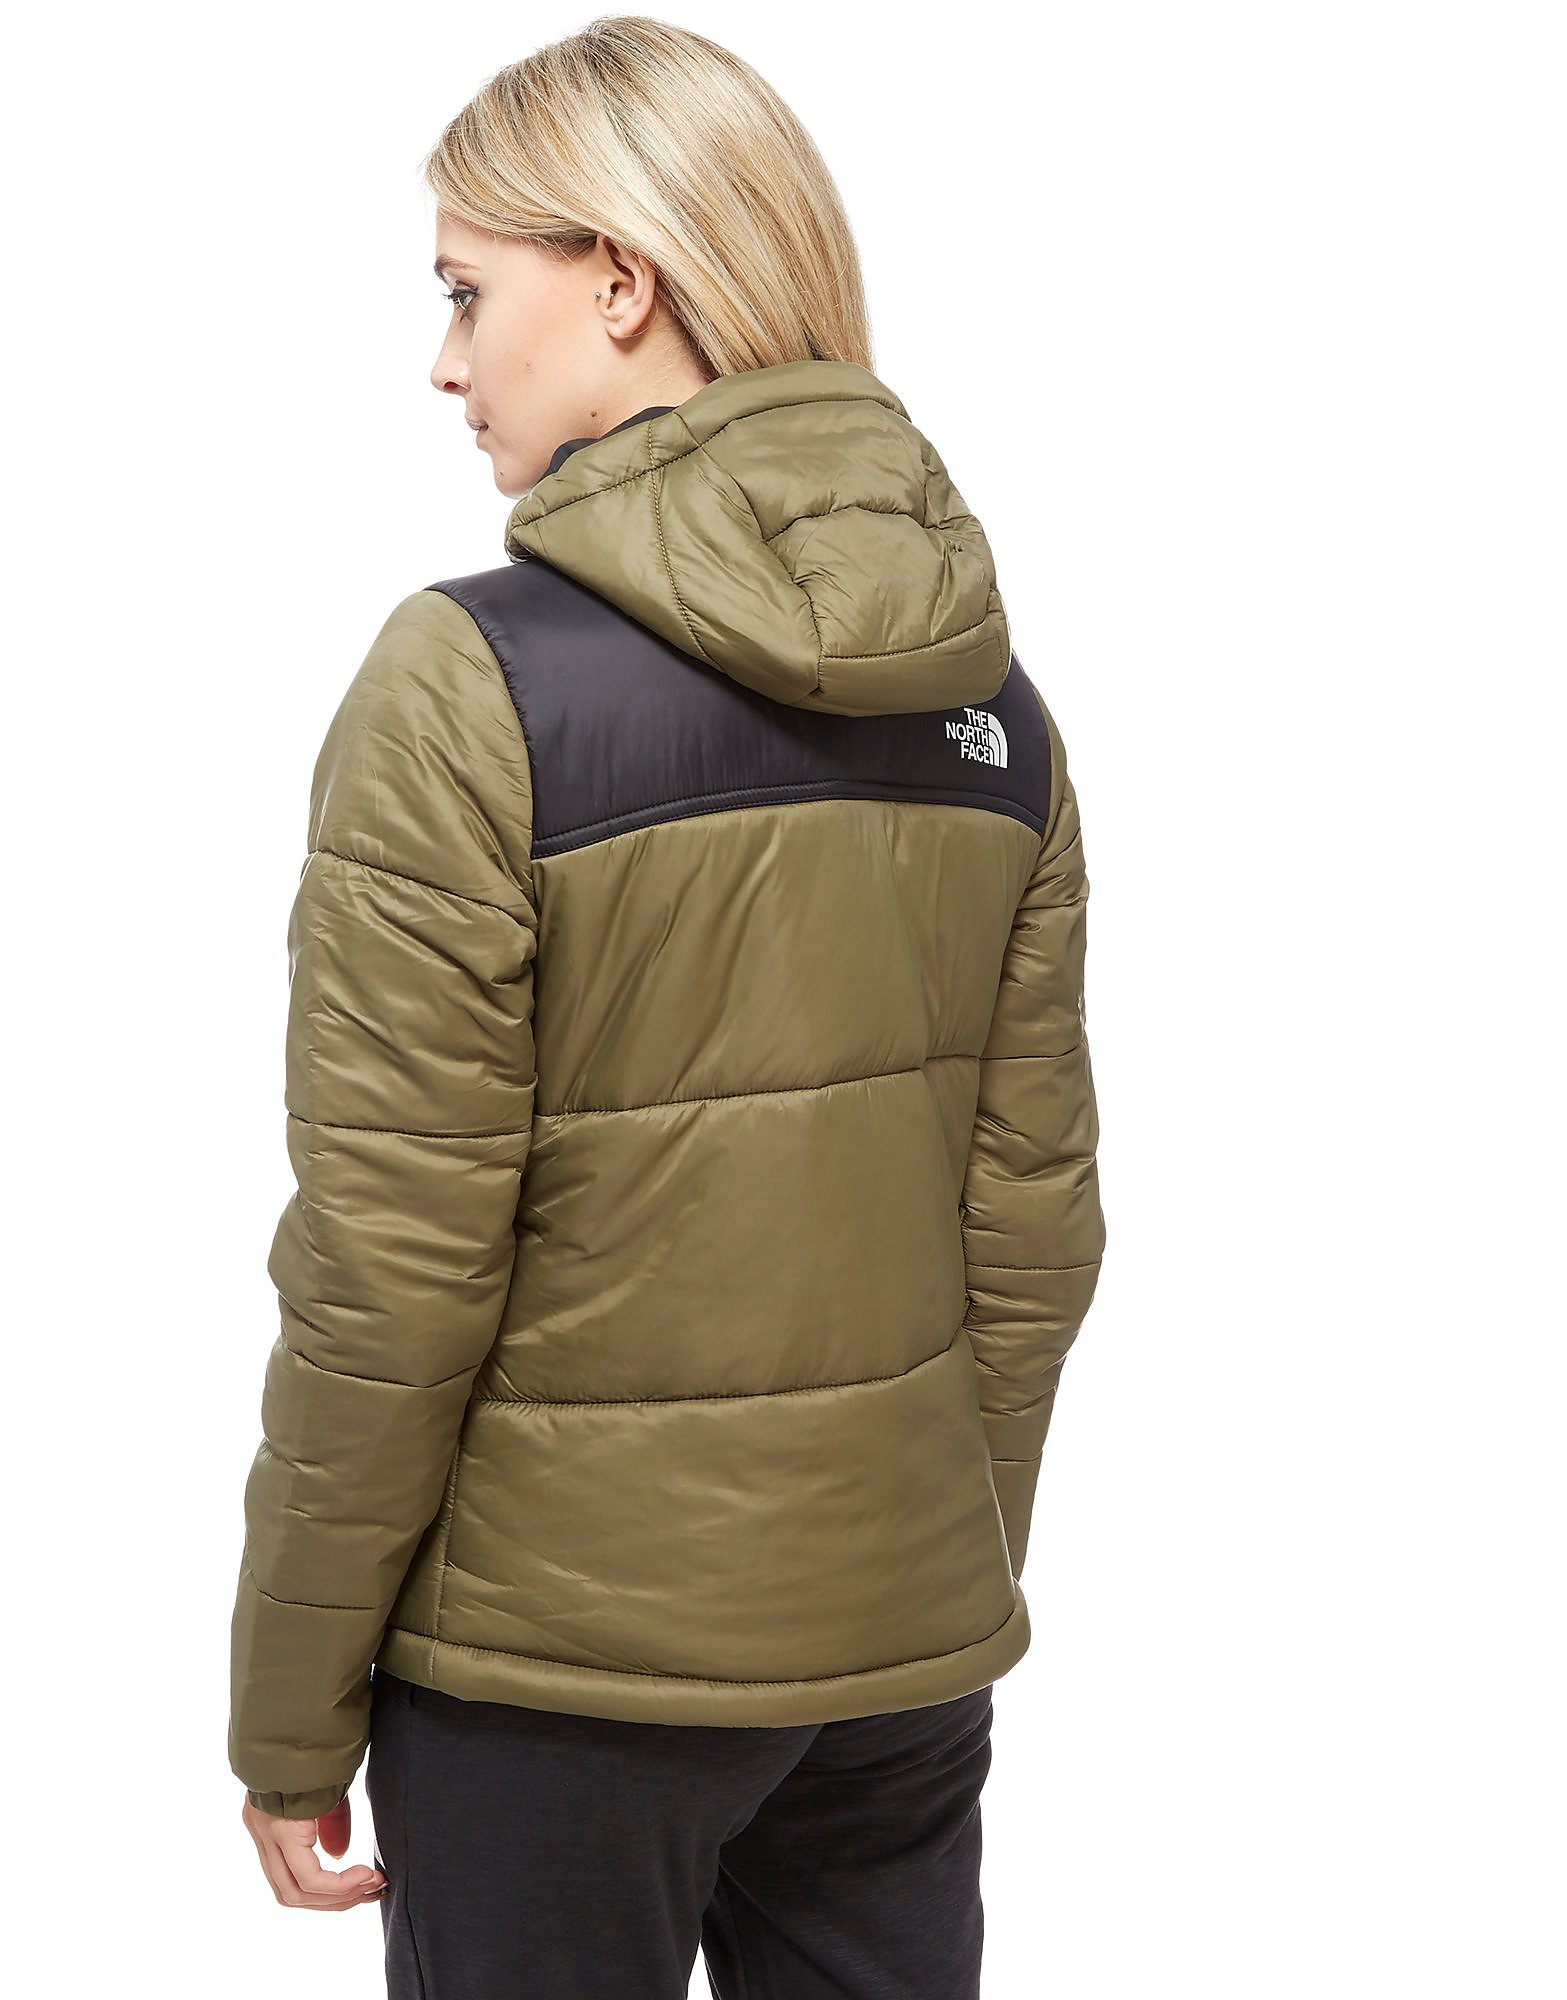 The North Face chaqueta Panel